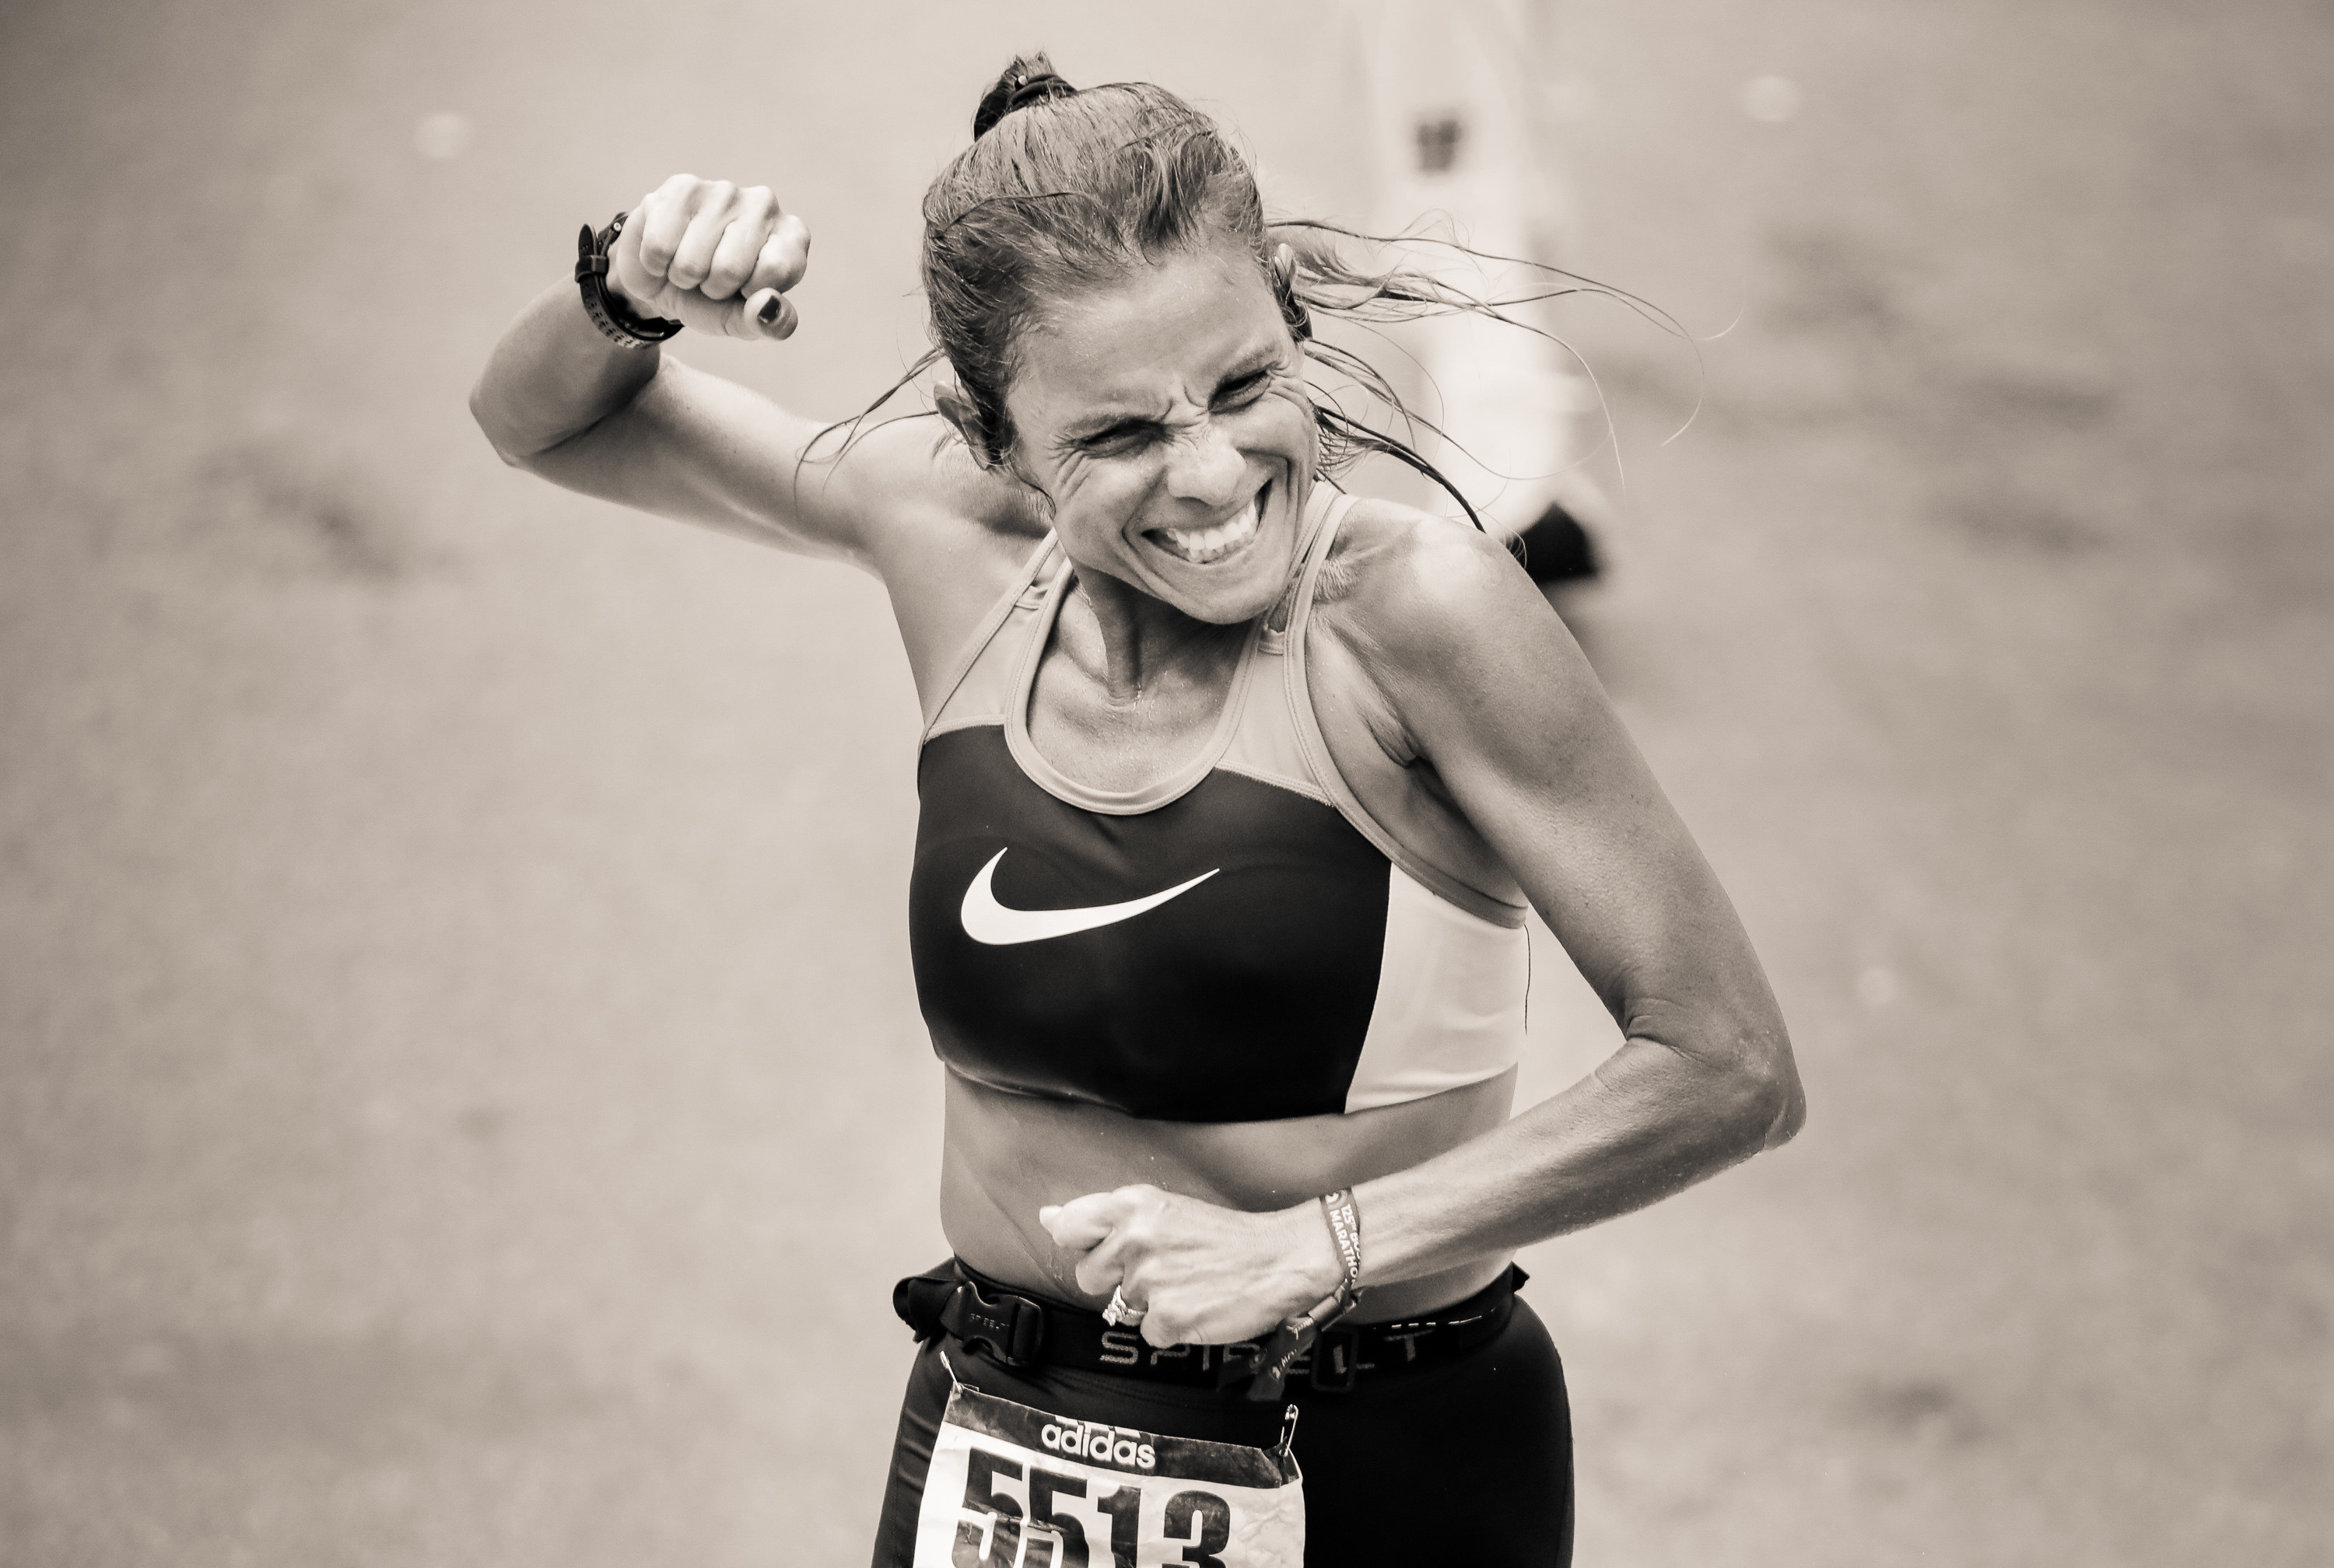 A woman pumps her fist as she crosses the finish line of the Boston Marathon